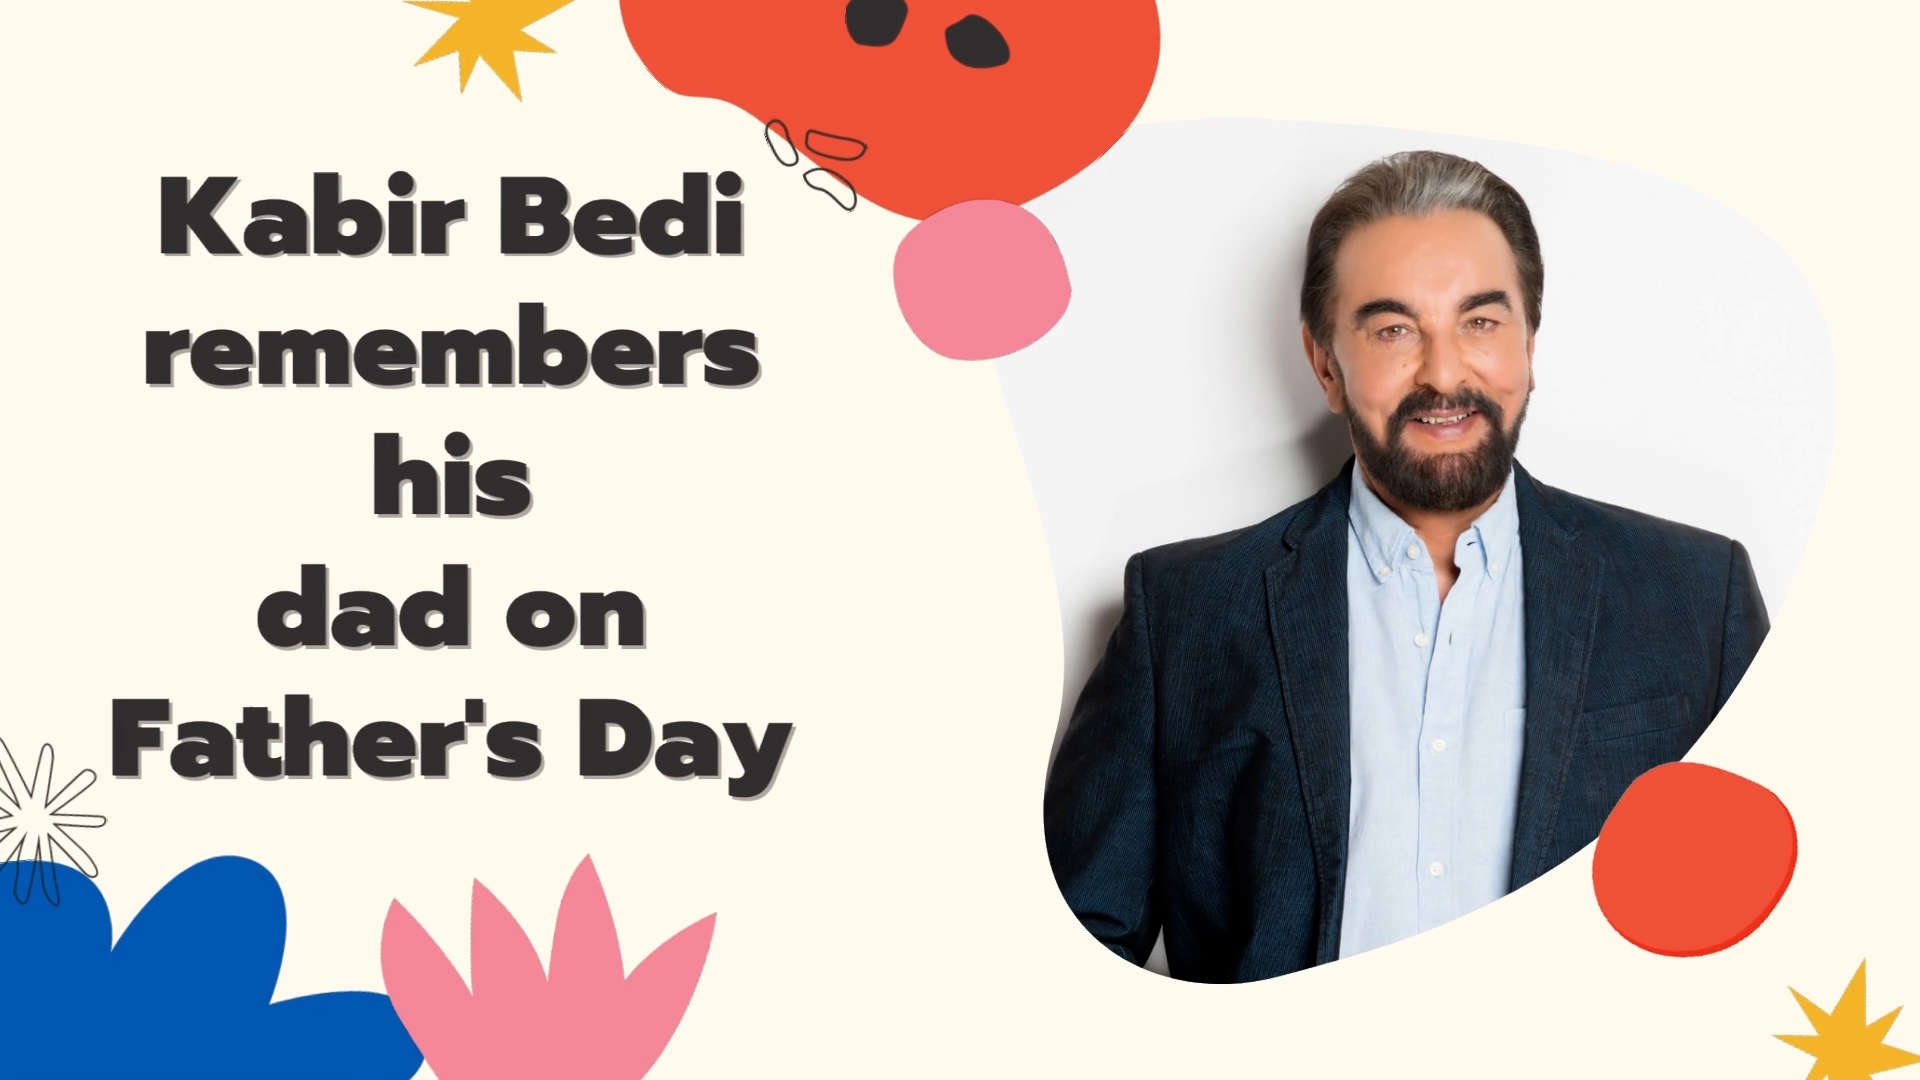 kabir-bedi-remembers-his-dad-on-fathers-day